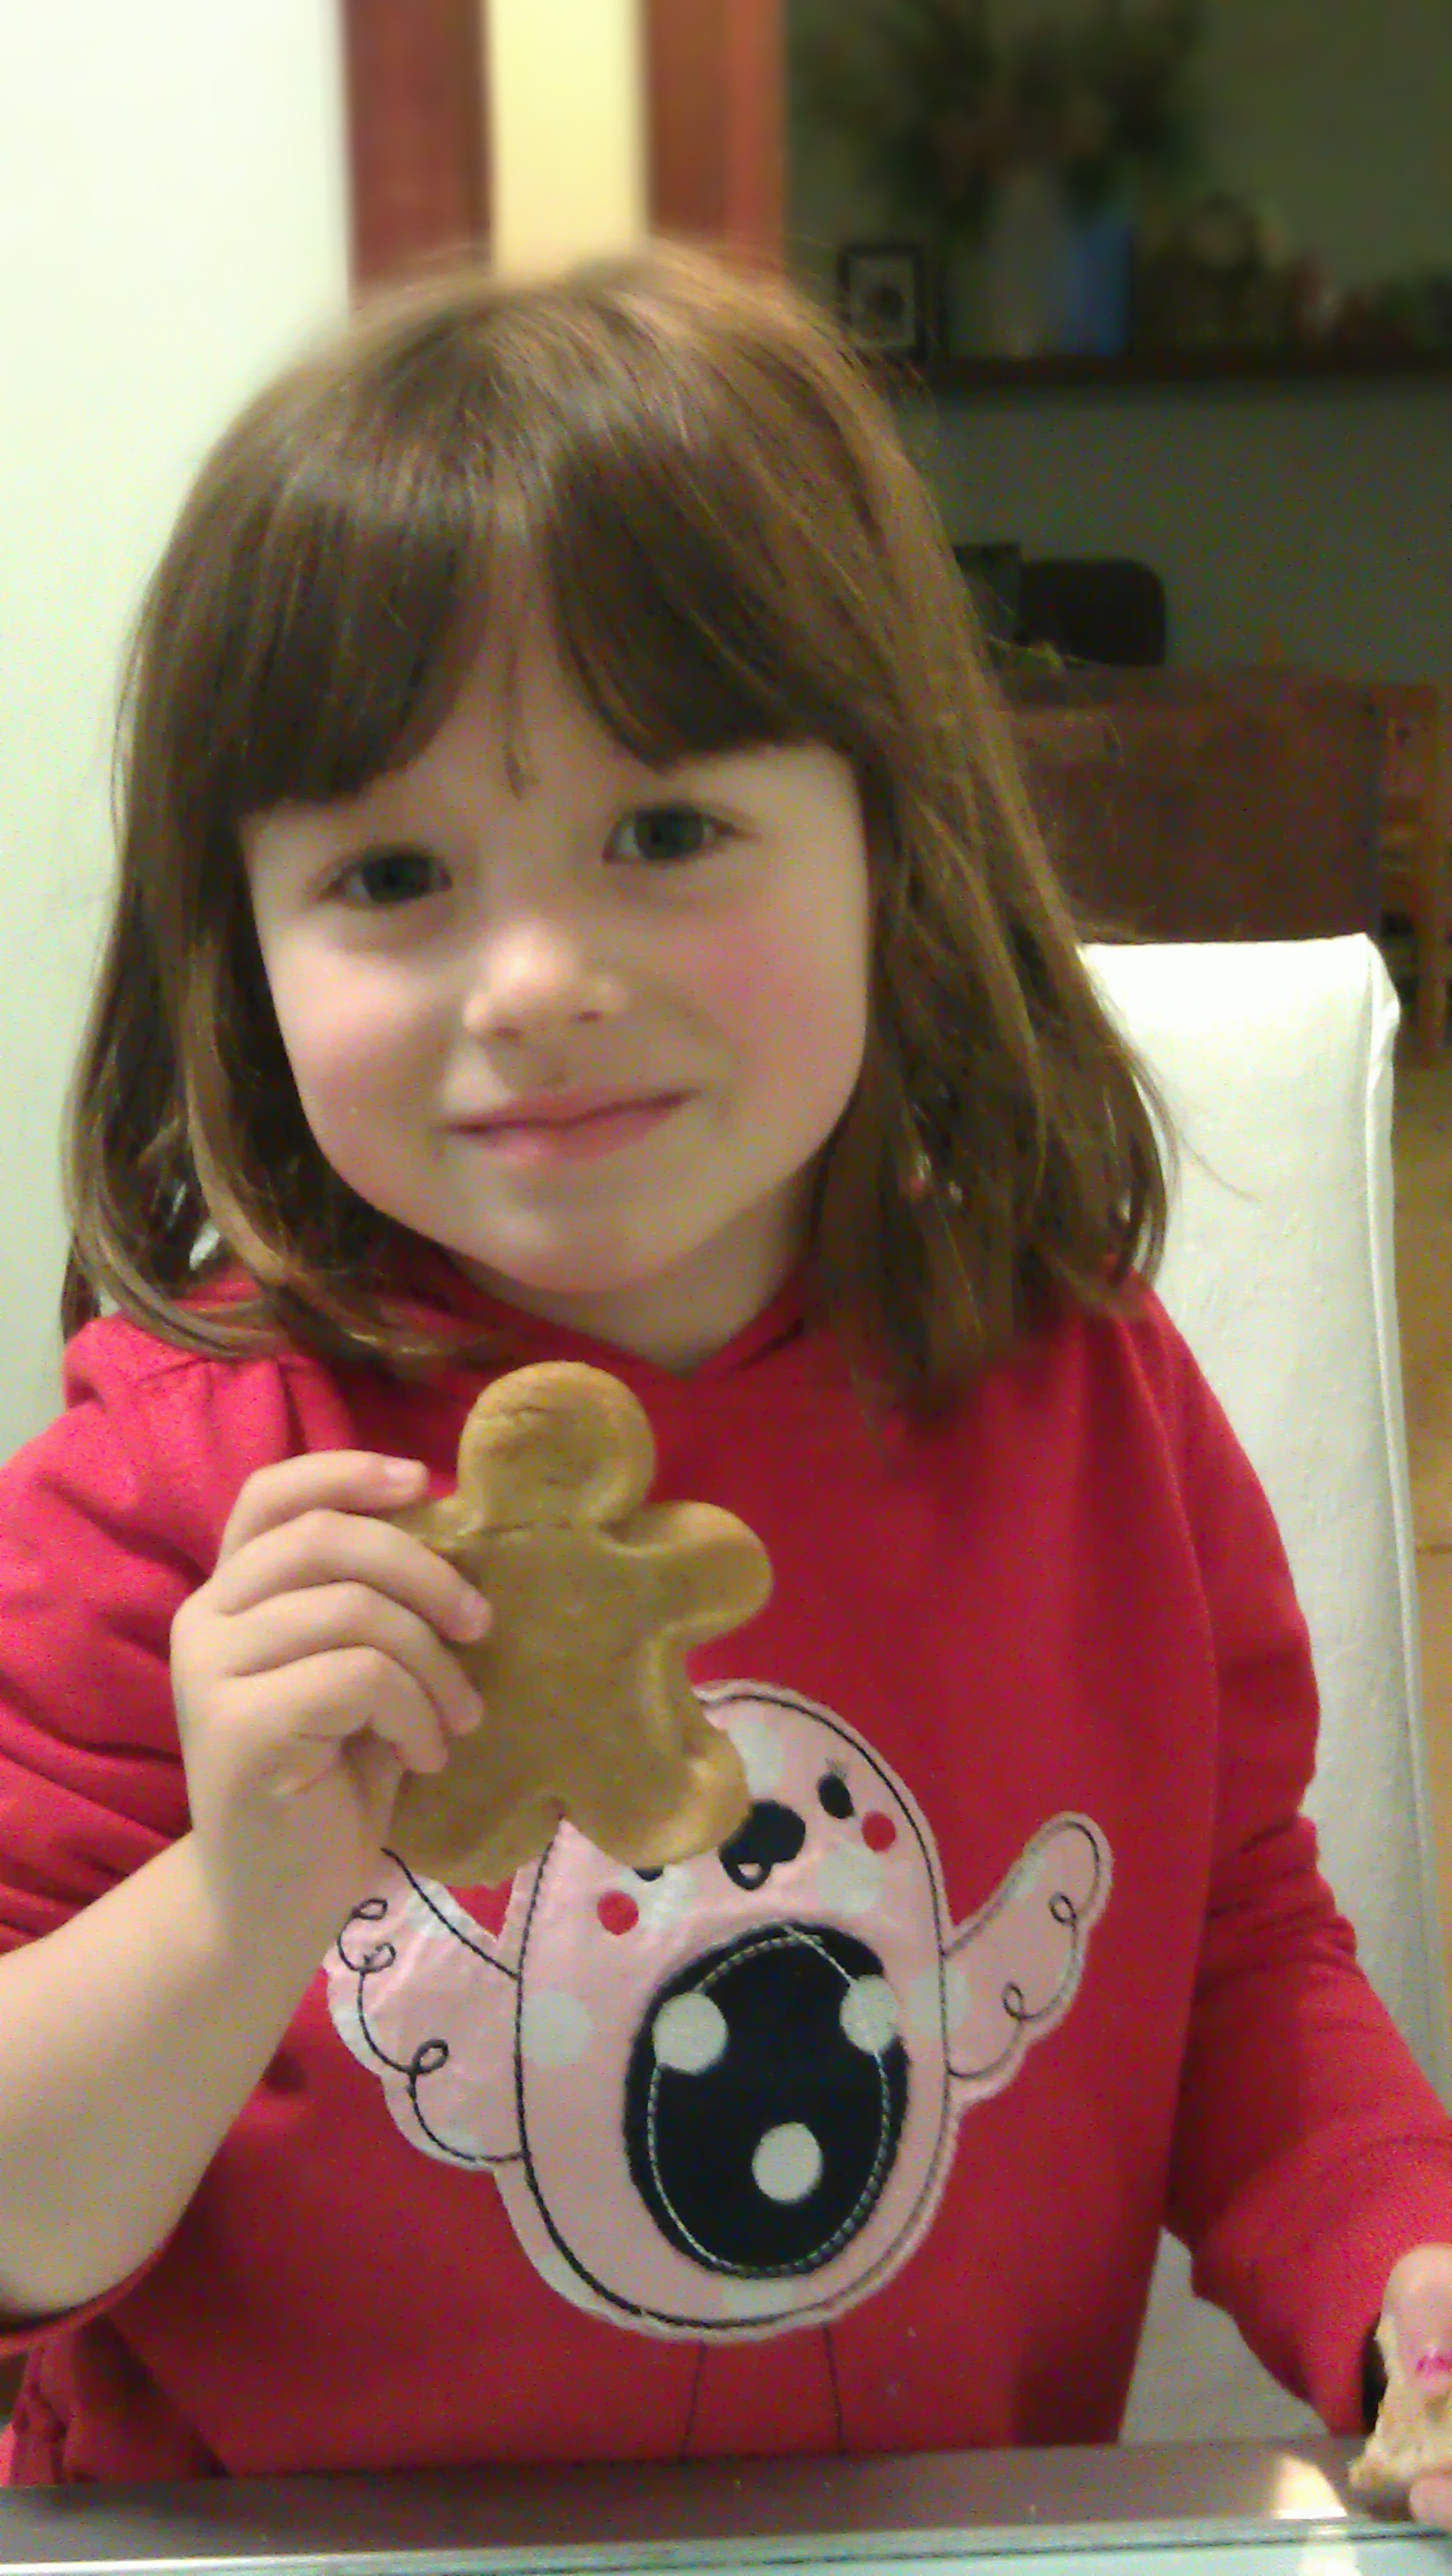 Proudly showing one of her gingerbread men...